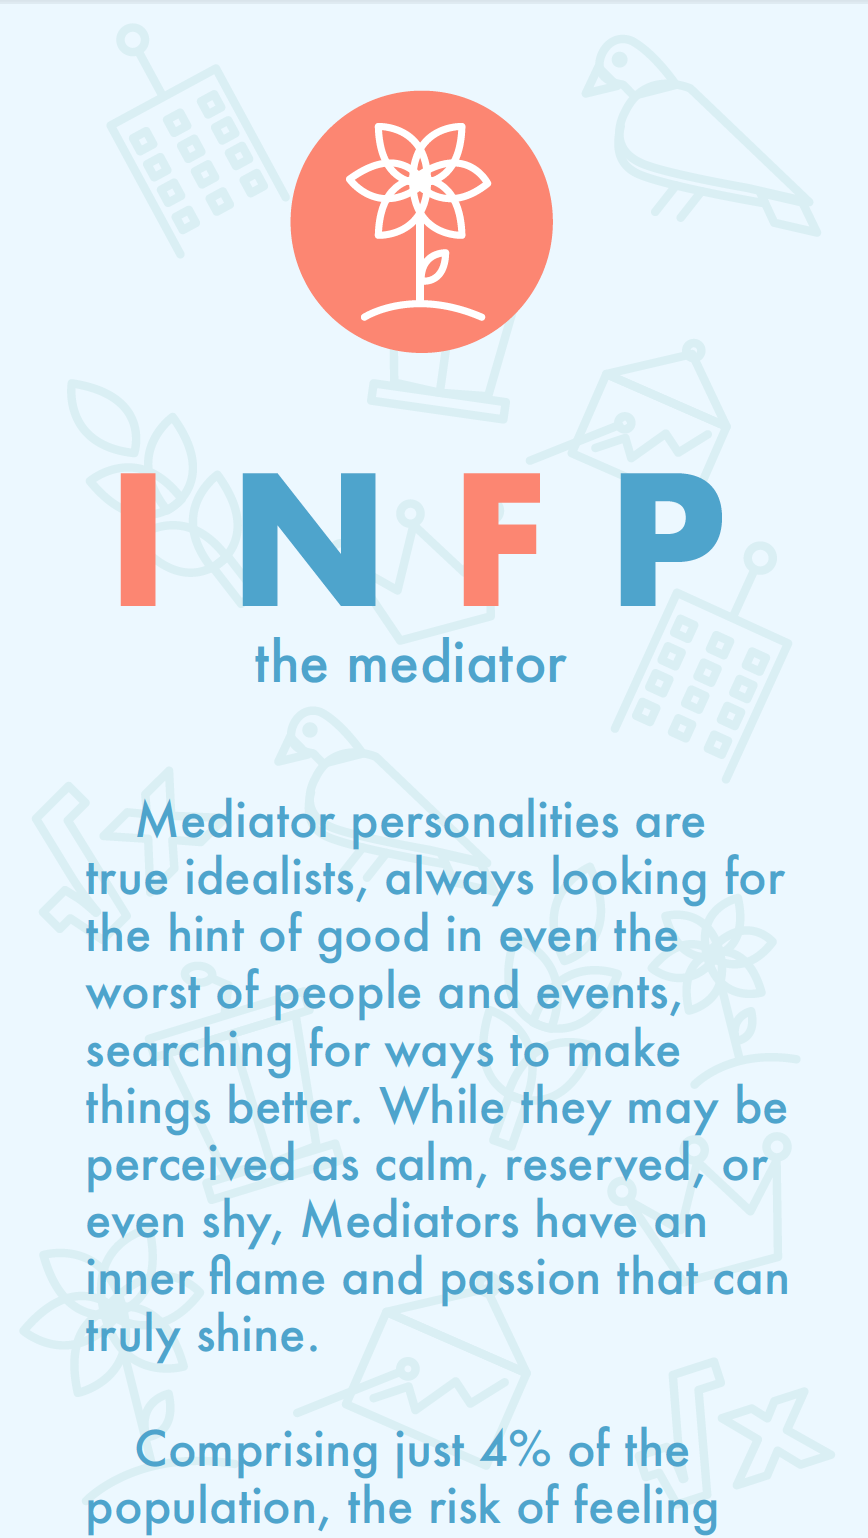 RESULTS AND PROFILE PAGE  // Here, the user can see their MBTI personality type. I have given each personality type a symbol that best reflects it's personality. The colors for each letter represents the two different types of personalities.